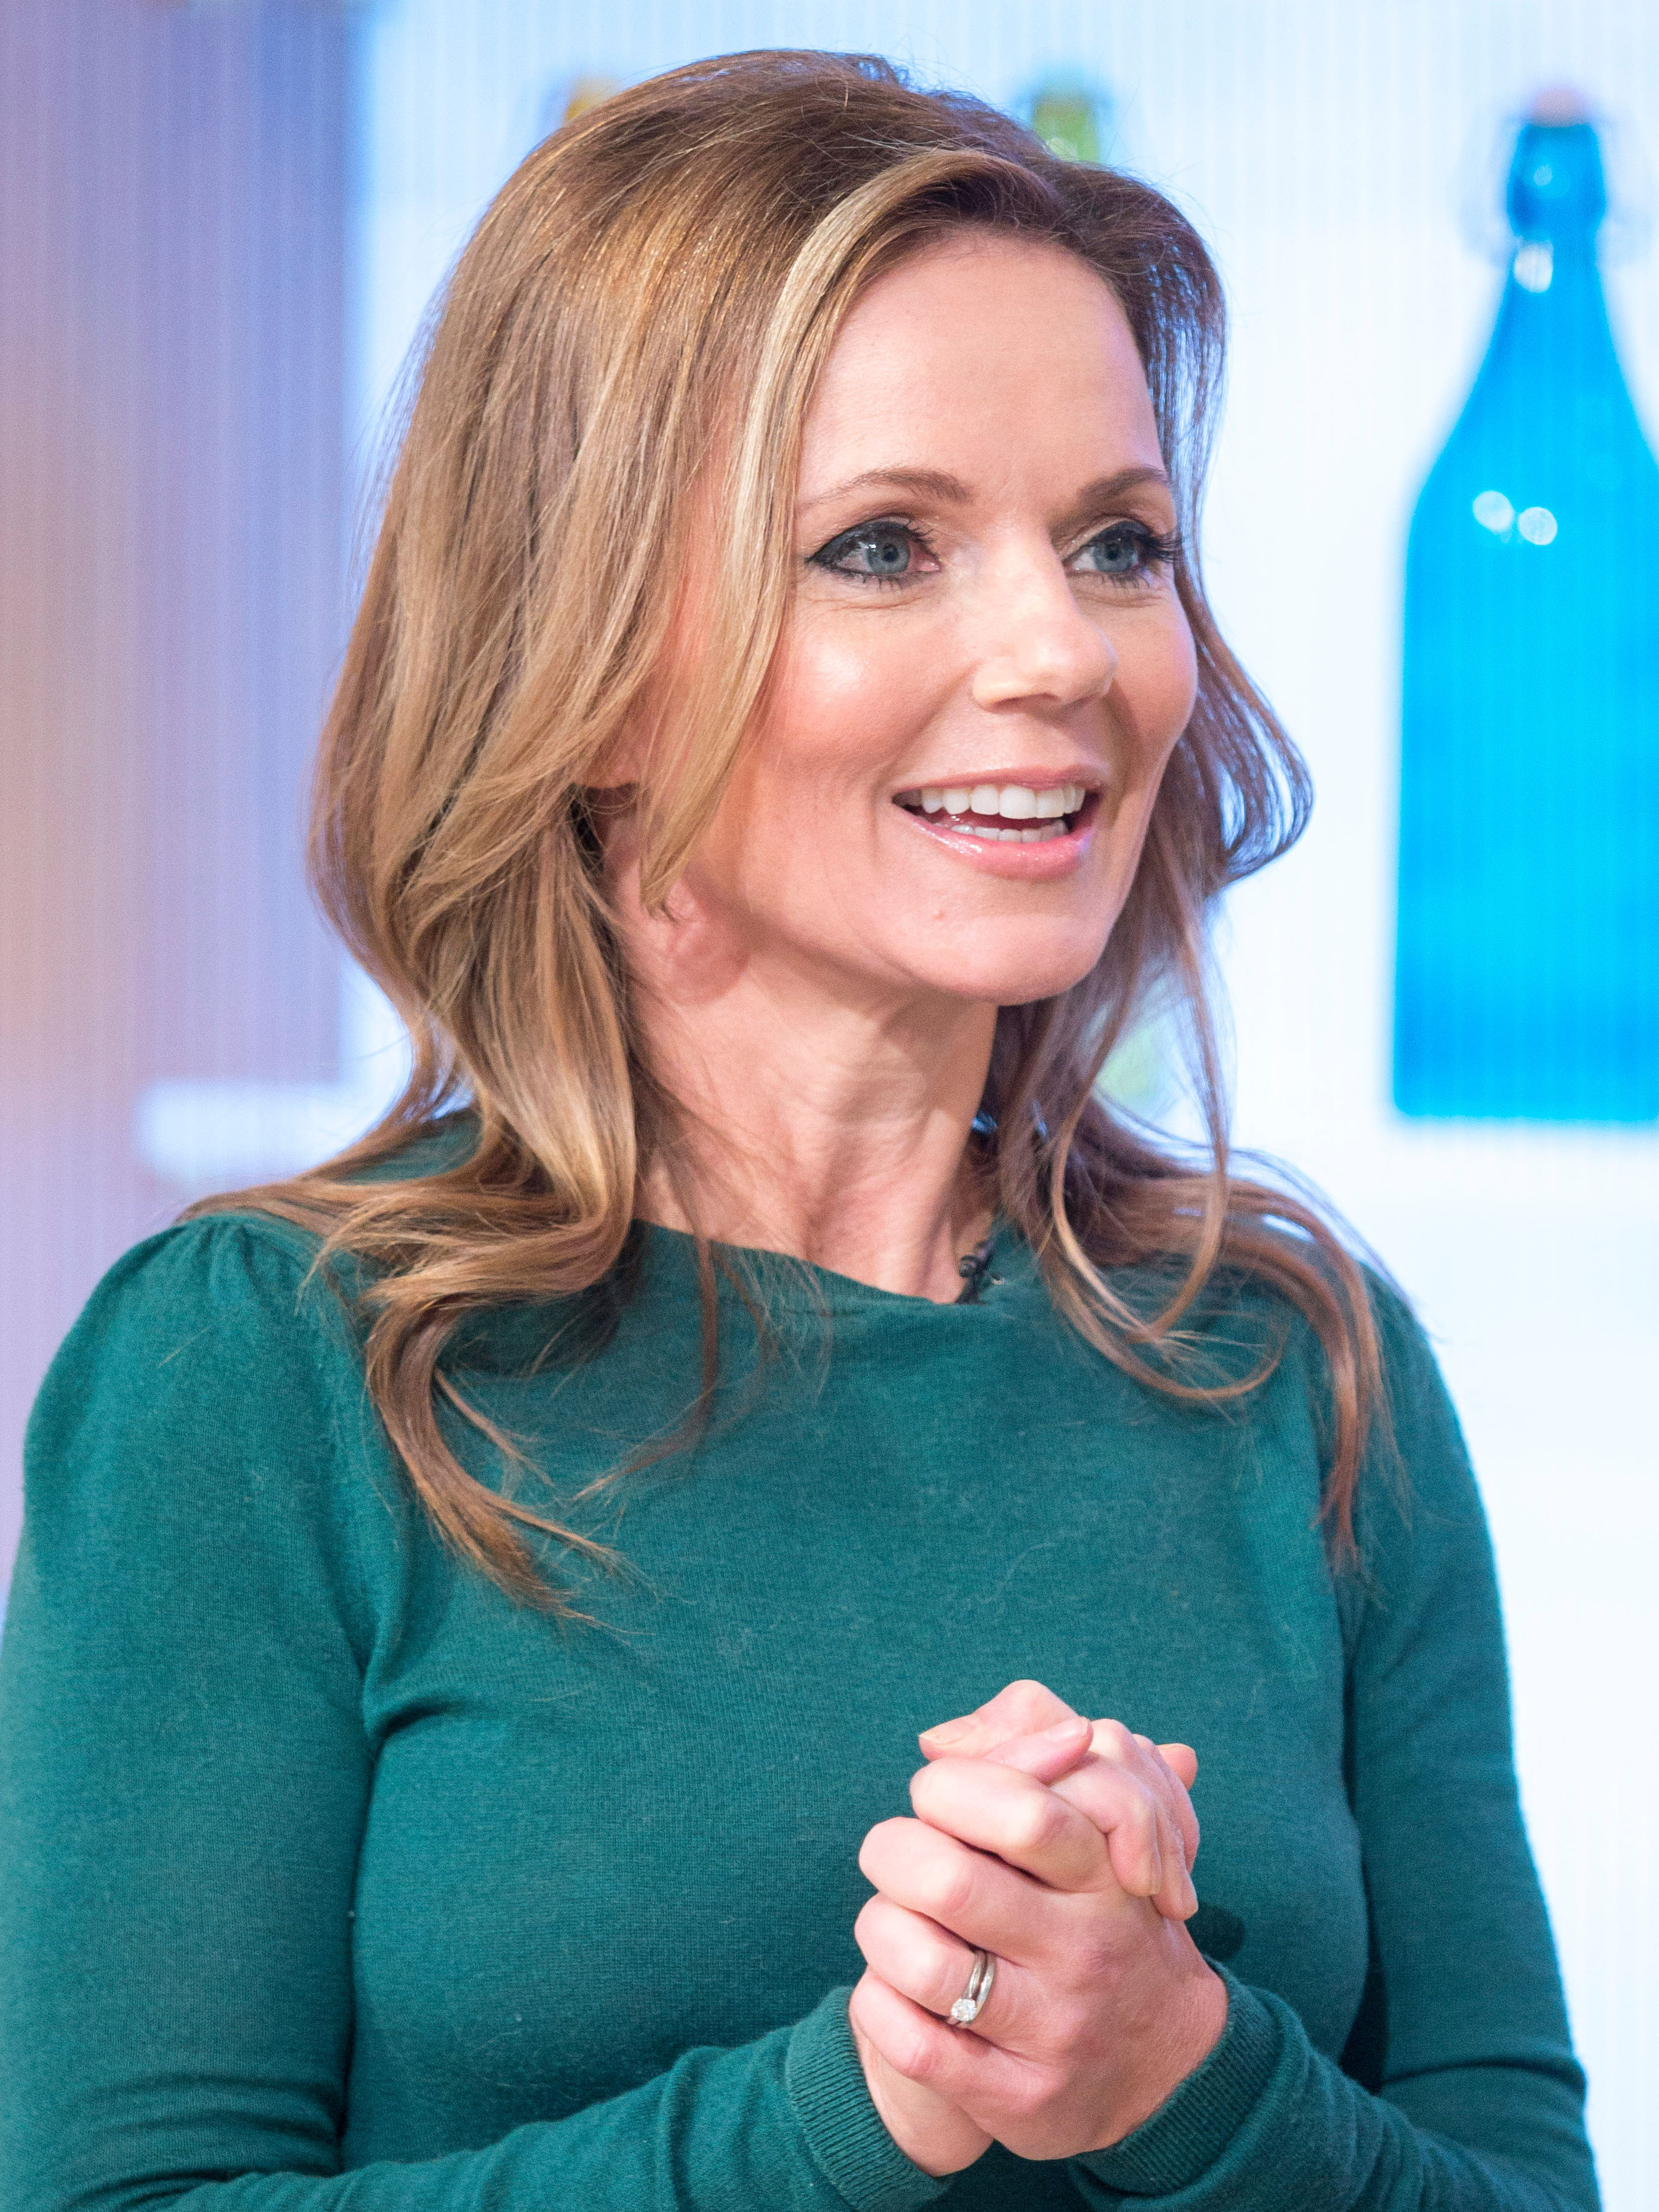 Geri Horner transforms into Ginger Spice as she shows off incredible new makeover in sleek snap